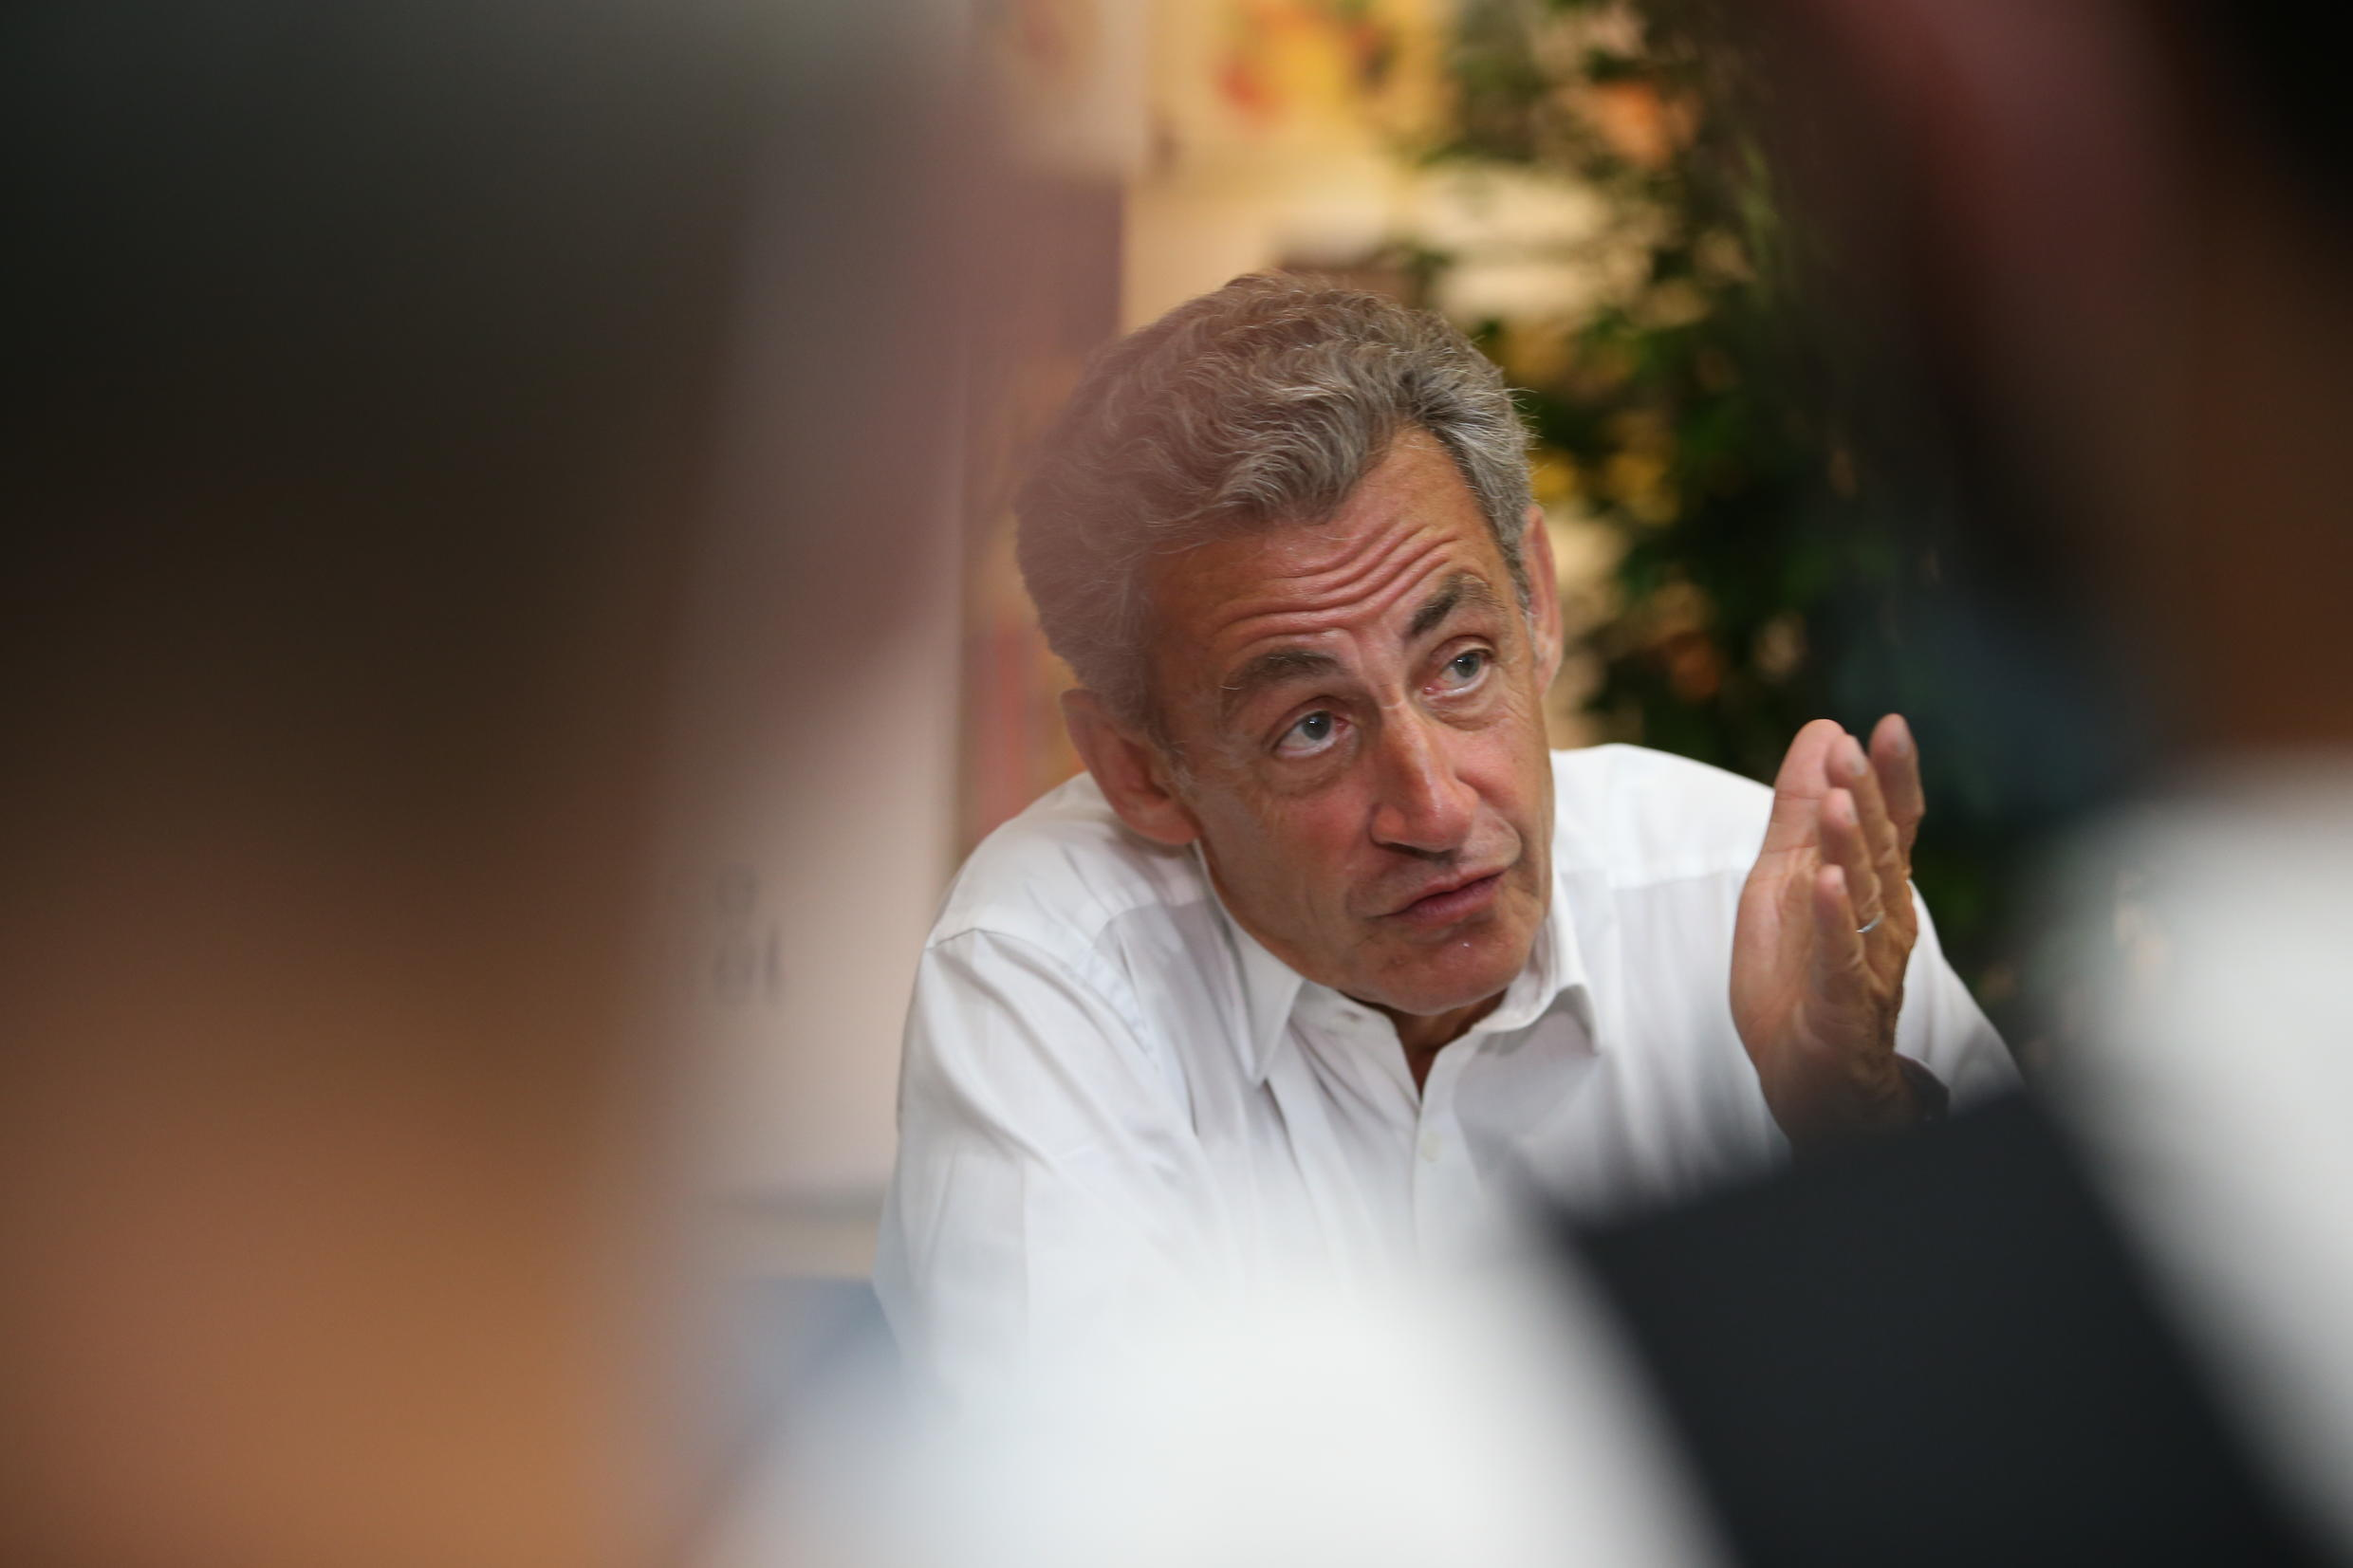 """Former French President Nicolas Sarkozy answers journalist's questions during a signing session of his new book """"Le Temps des Tempêtes"""" inside Baleone shopping center in Ajaccio, on July 24, 2020, on the French Mediterranean island of Corsica."""